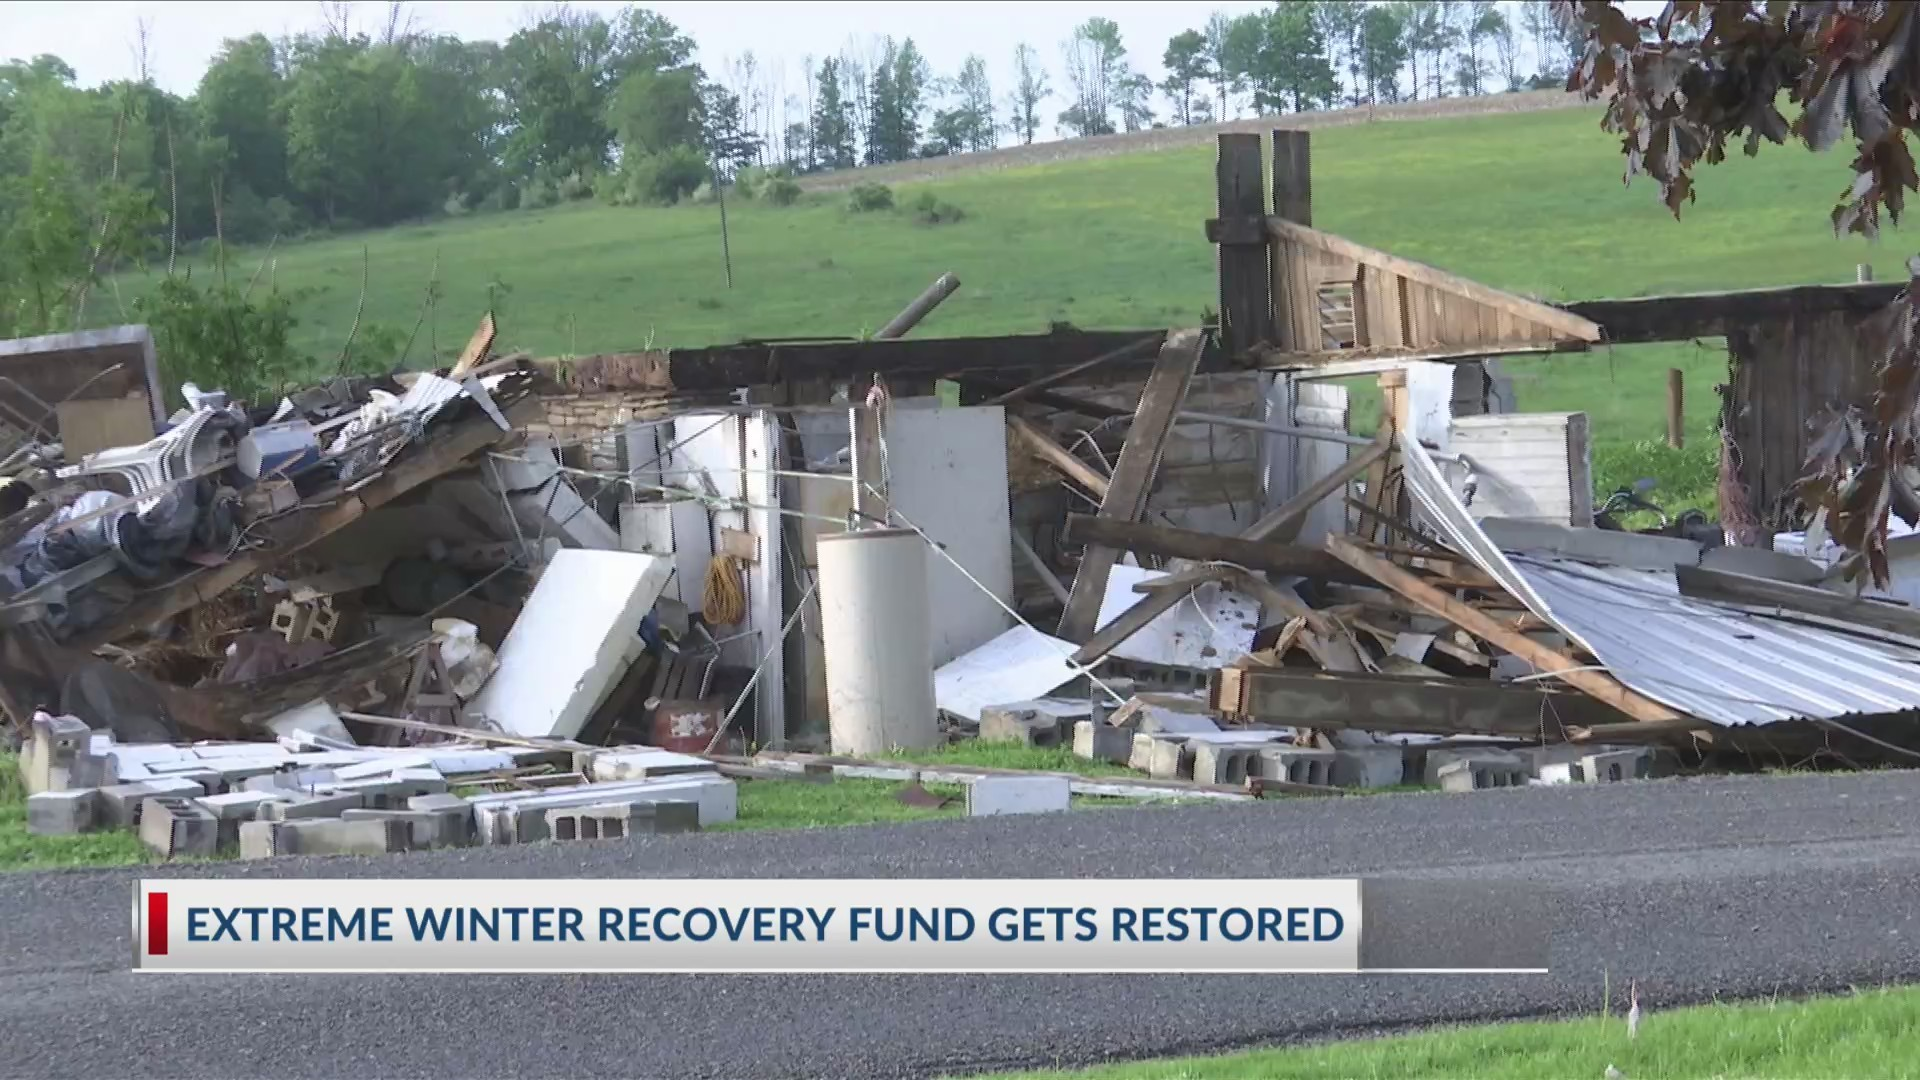 Extreme Winter Recovery Fund Gets Restored